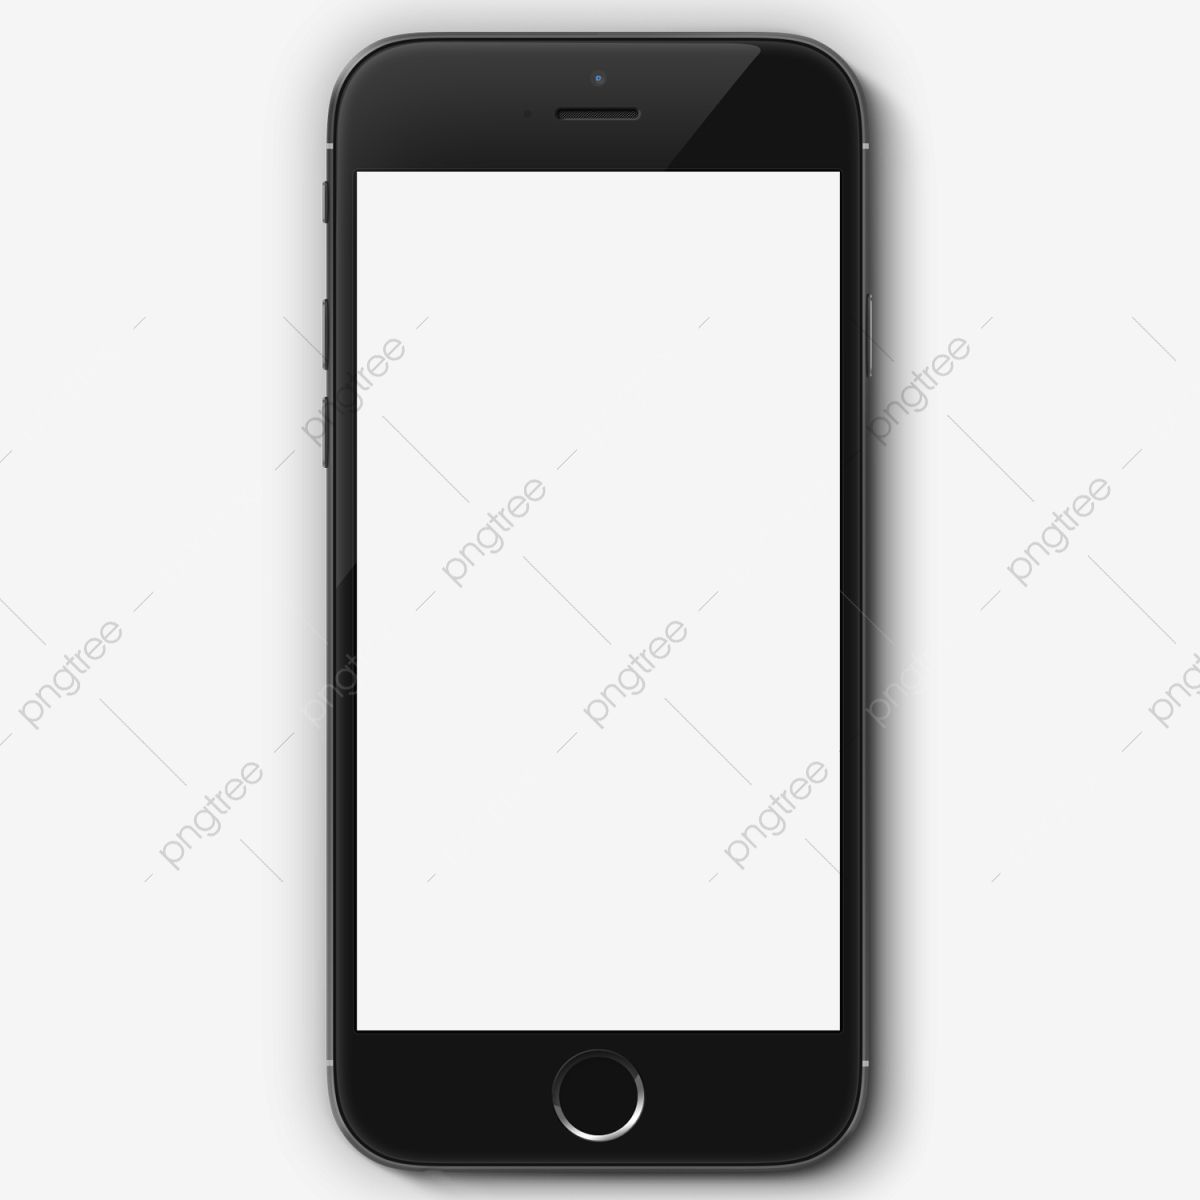 Download This Iphone 8 Prototype Mockup Exclusive Mobile Phone Replenishing Png Clipart Image With Tra Iphone Iphone 8 Concept Glass Screen Protector Iphone